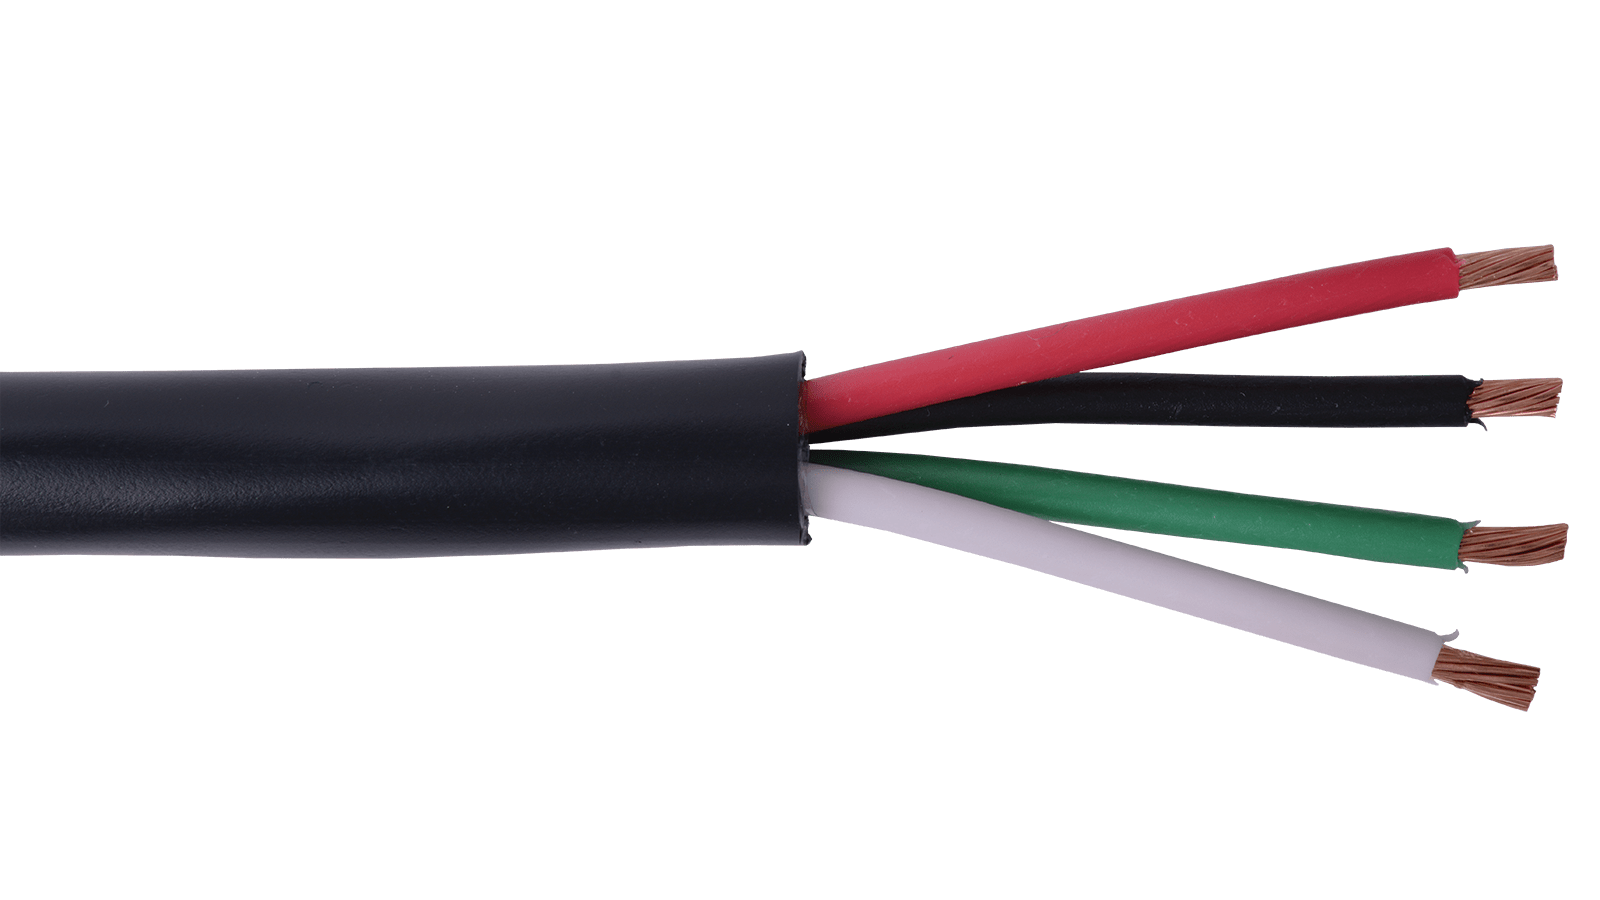 16-4C-DB-BLK - Direct Burial Speaker Cable 16 AWG 4-Conductor Cable